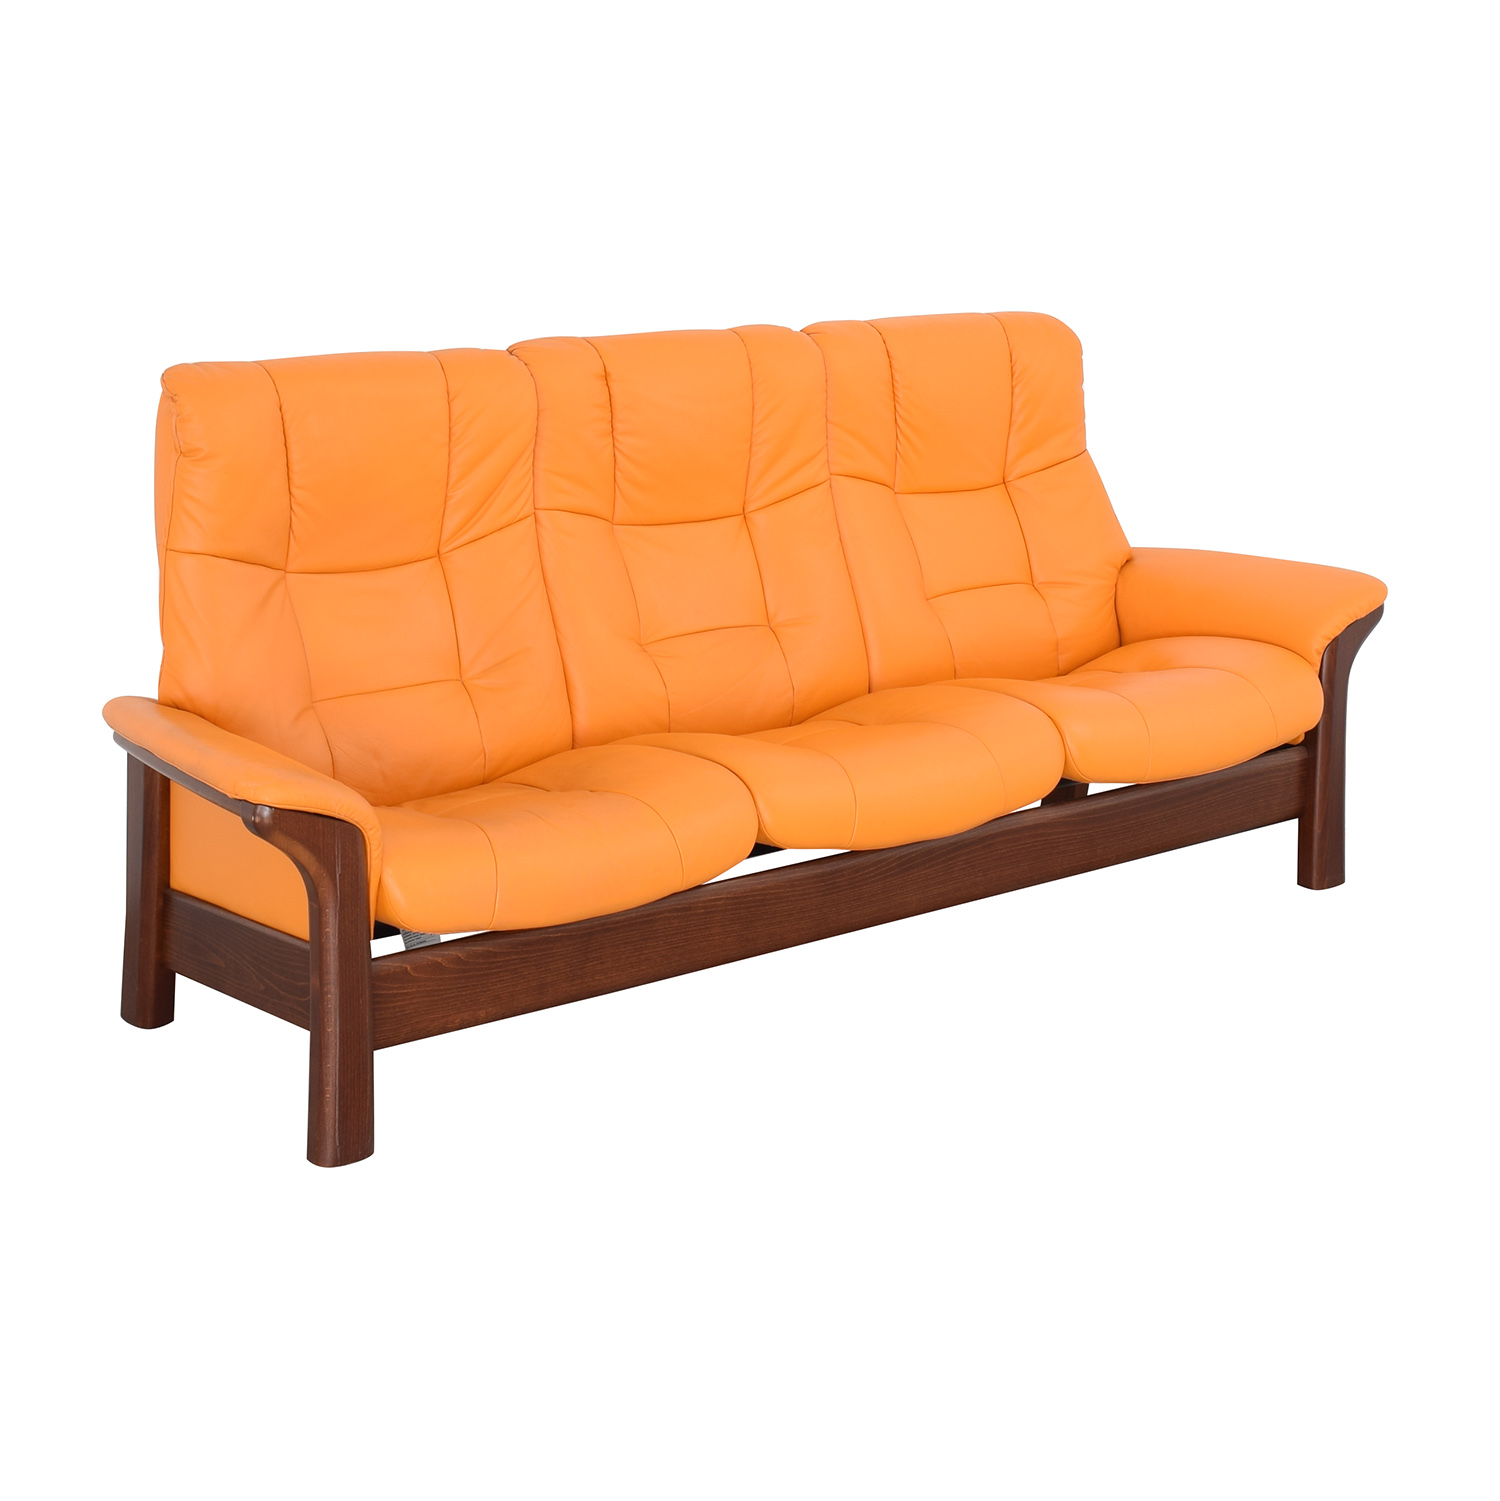 buy Ekornes Ekornes Buckingham High Back Sofa online